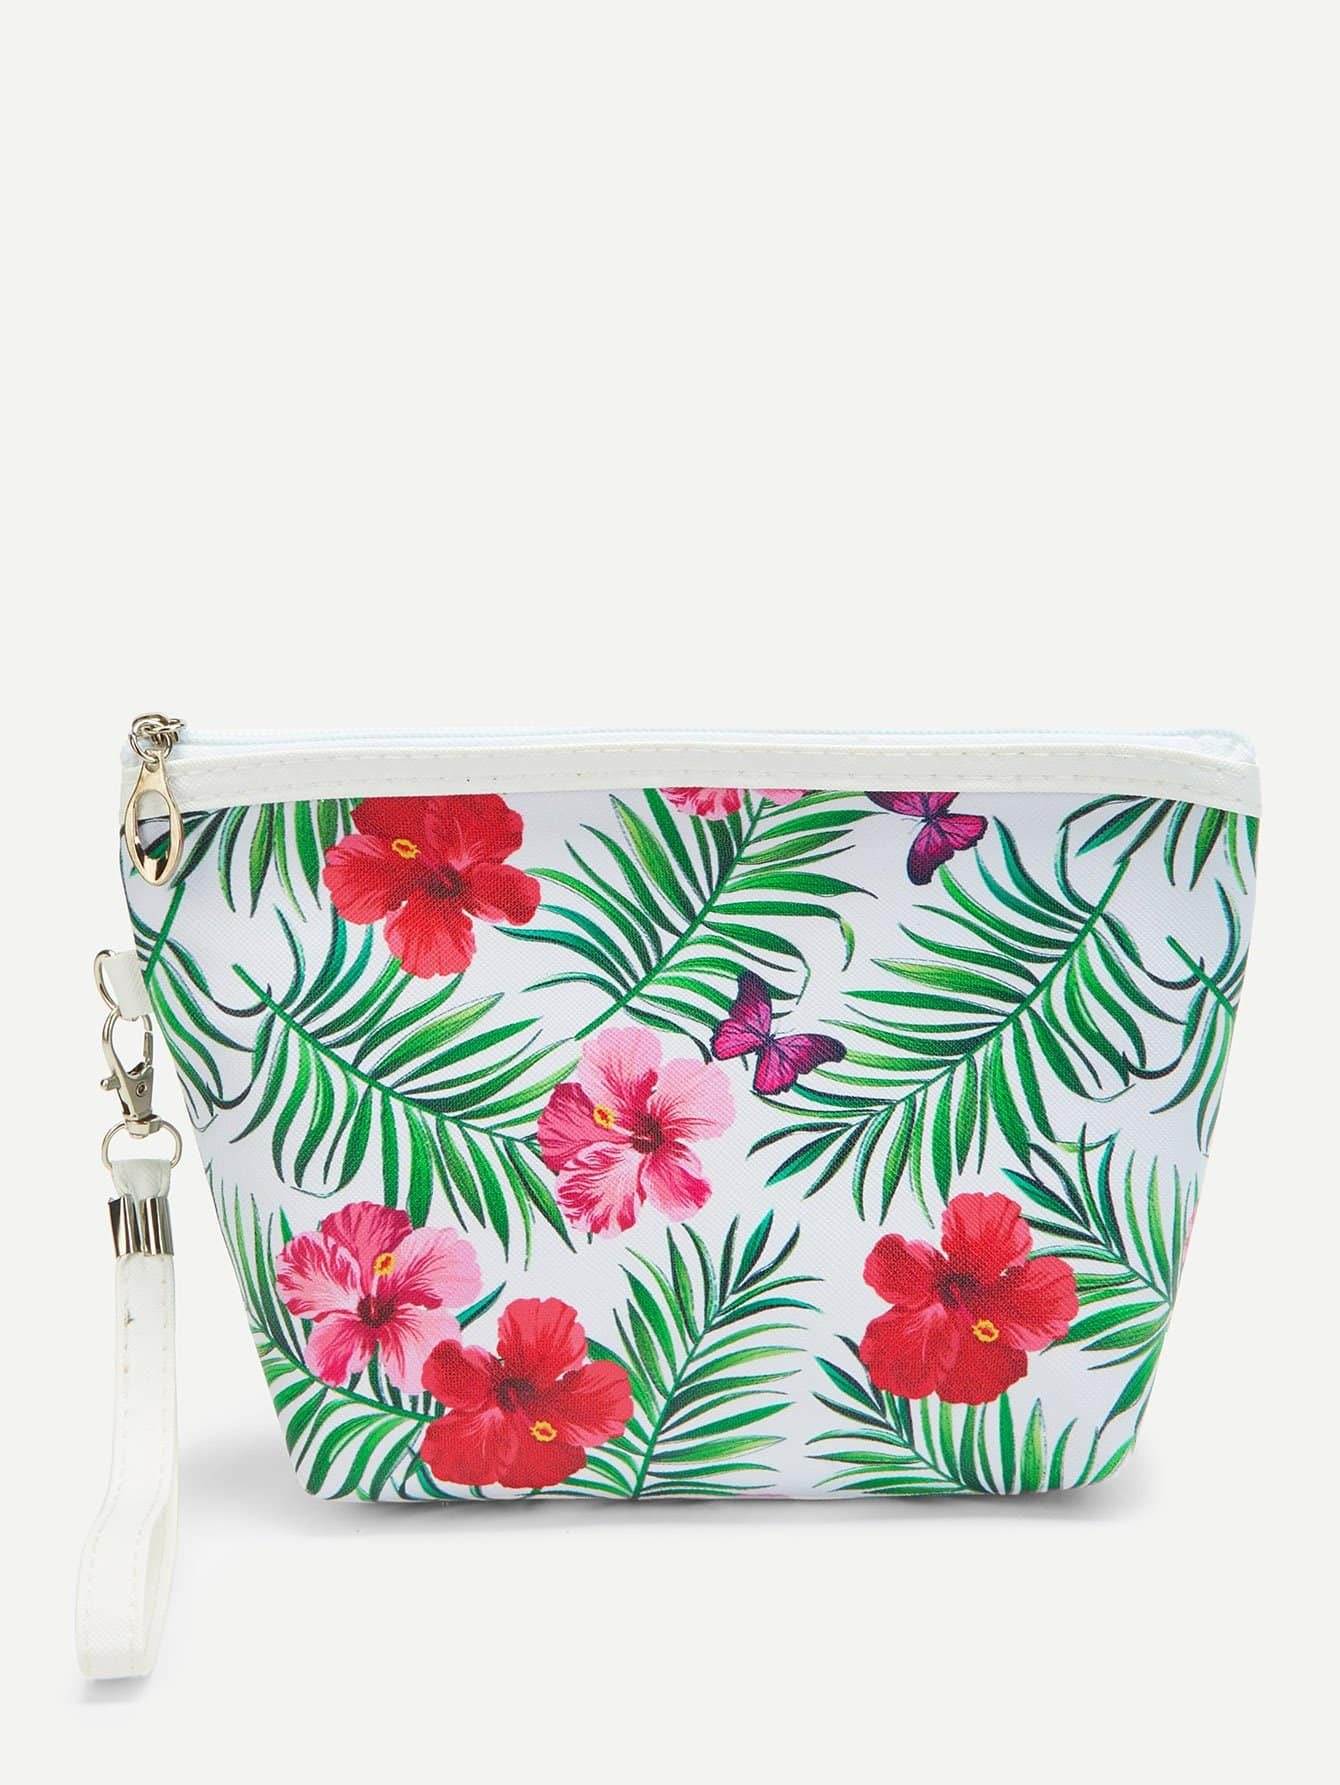 Flower Print Makeup Bag fashion women travel kit jewelry organizer makeup cosmetic bag